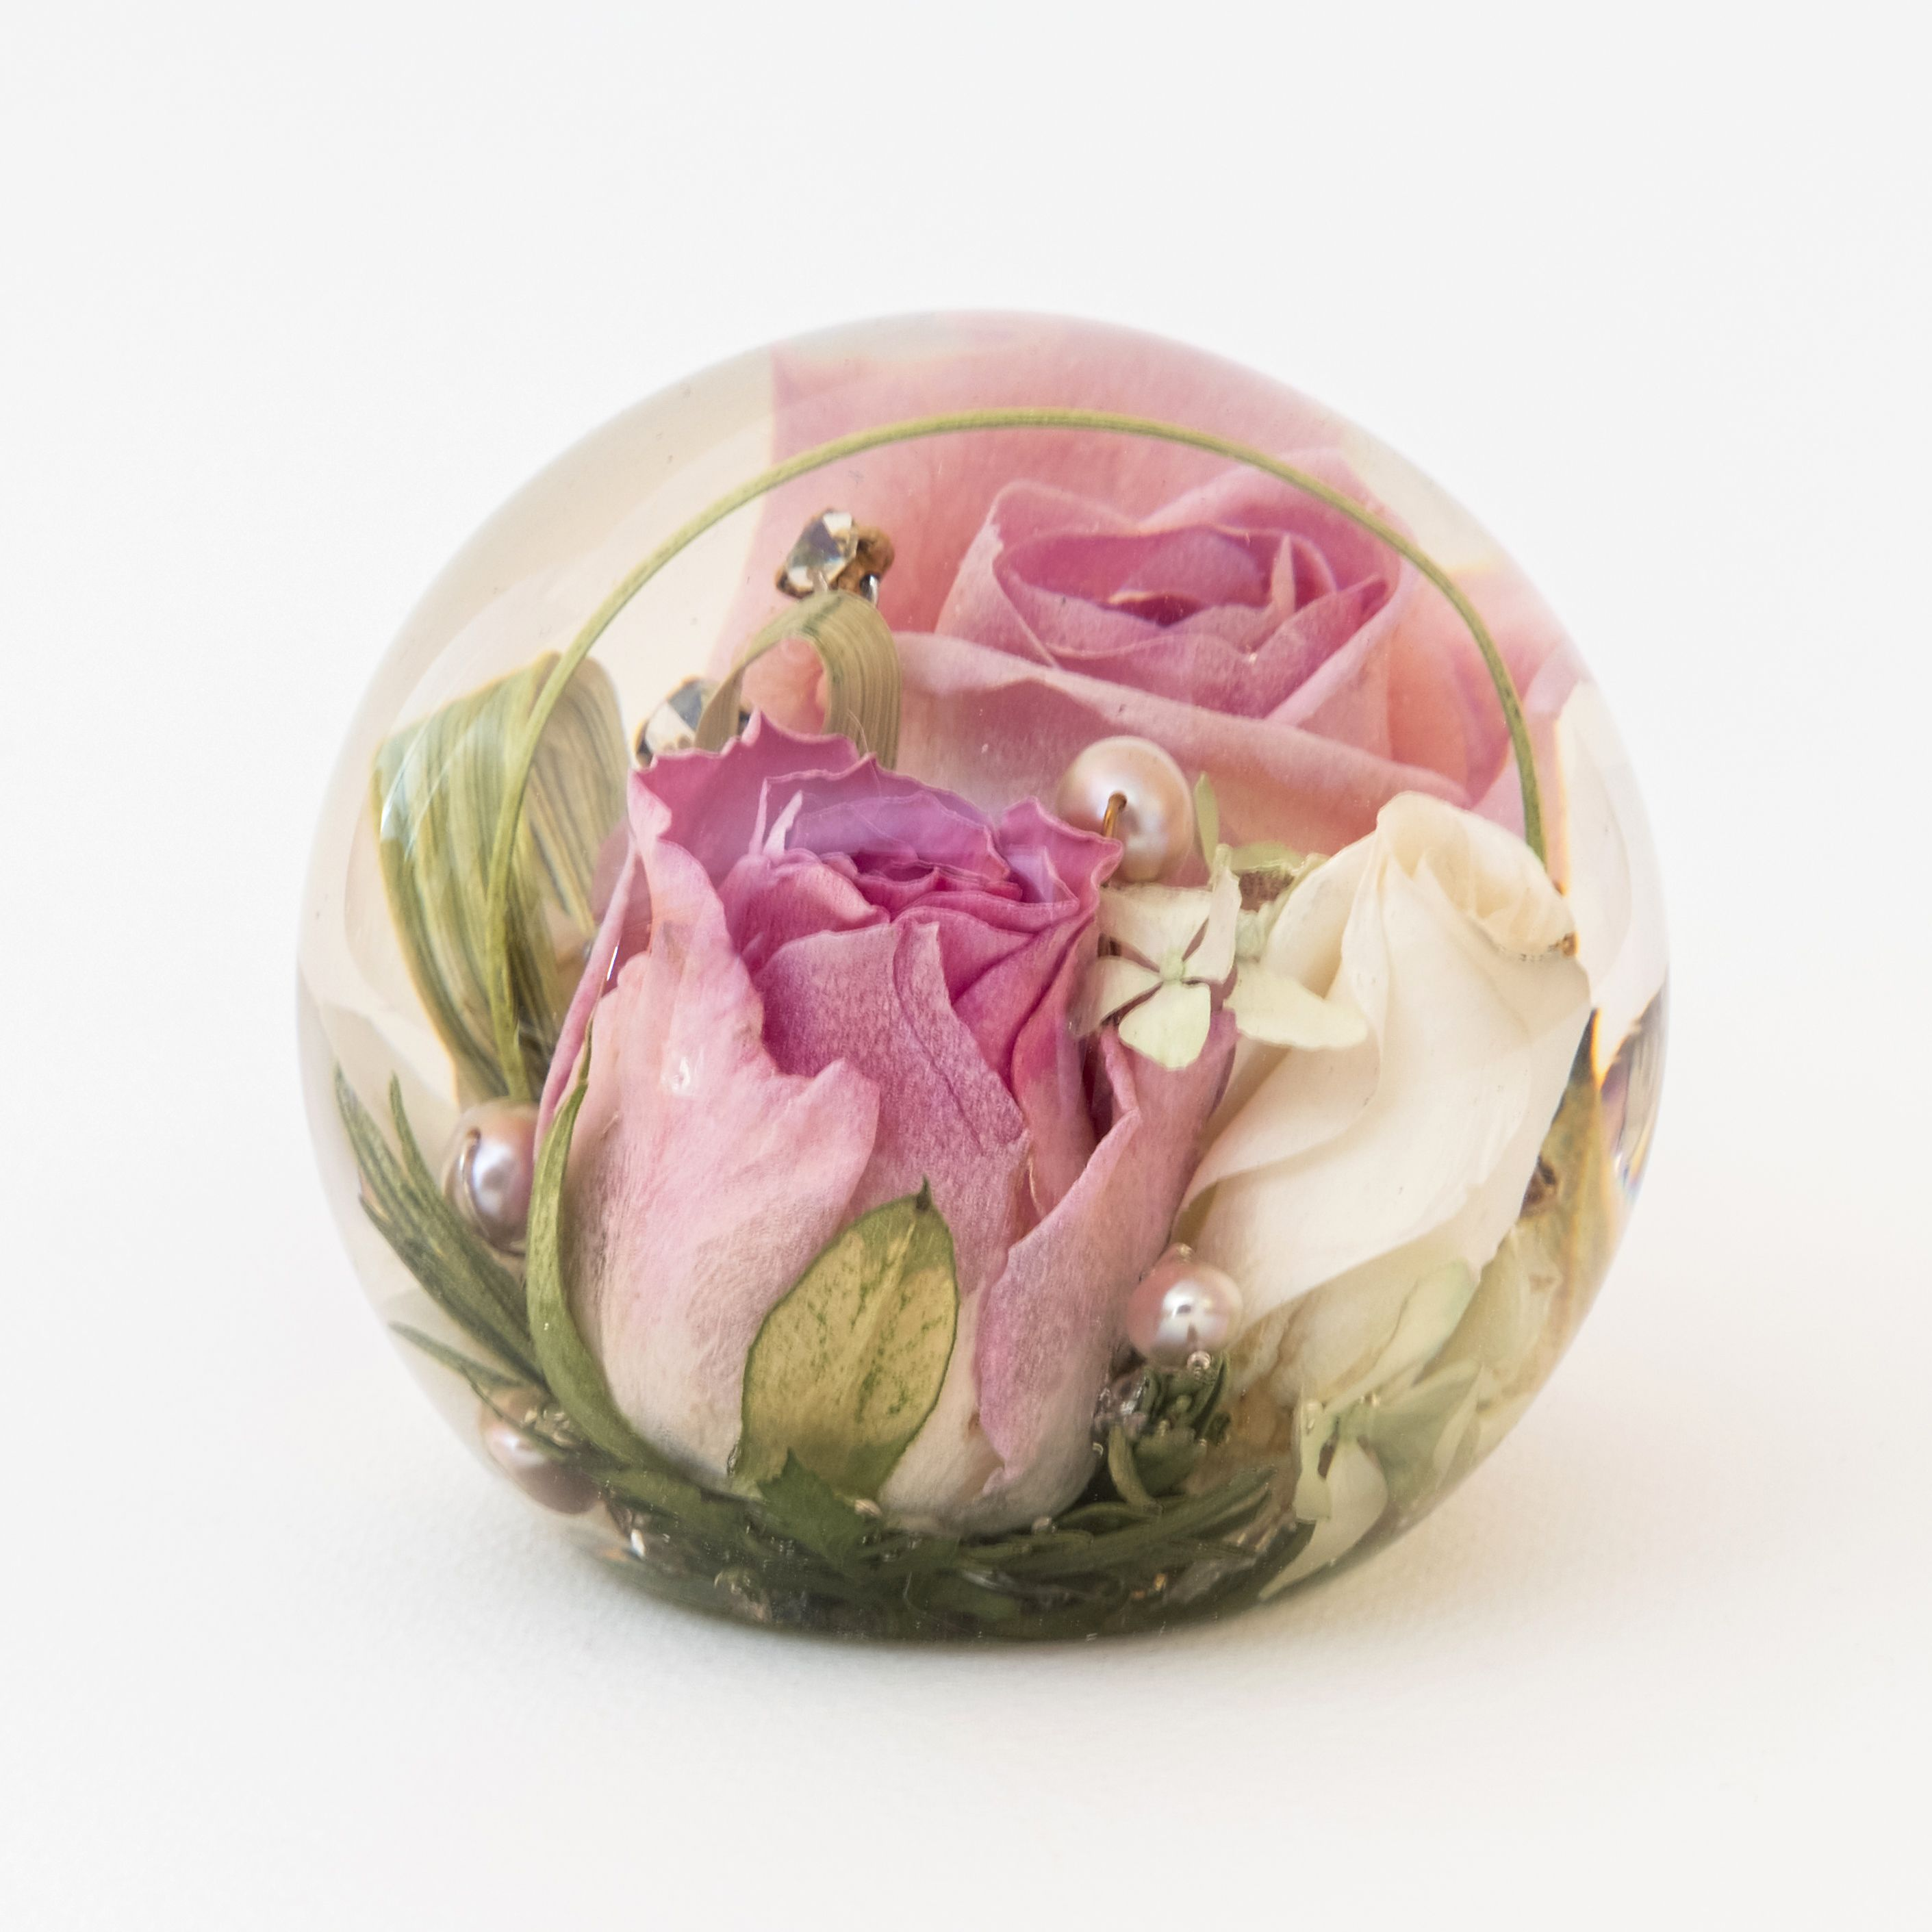 10 Creative Ways to Preserve Your Wedding Flowers How to